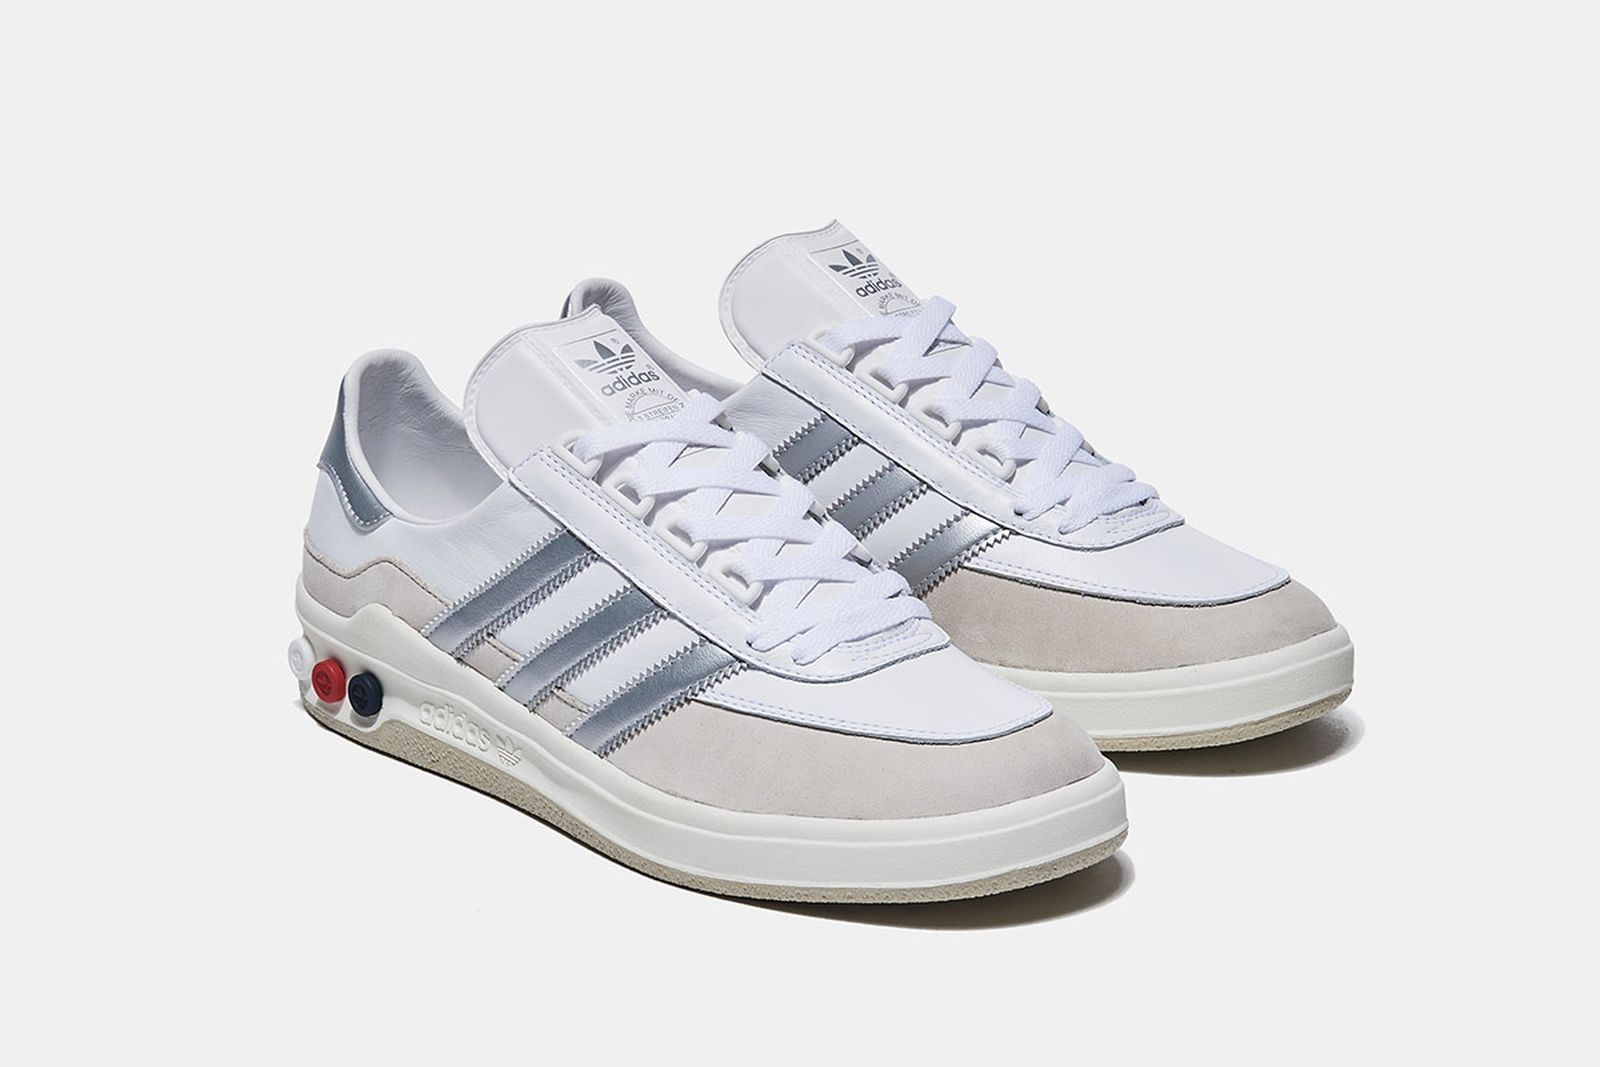 adidas spezial ss19 collection release date price adidas Originals